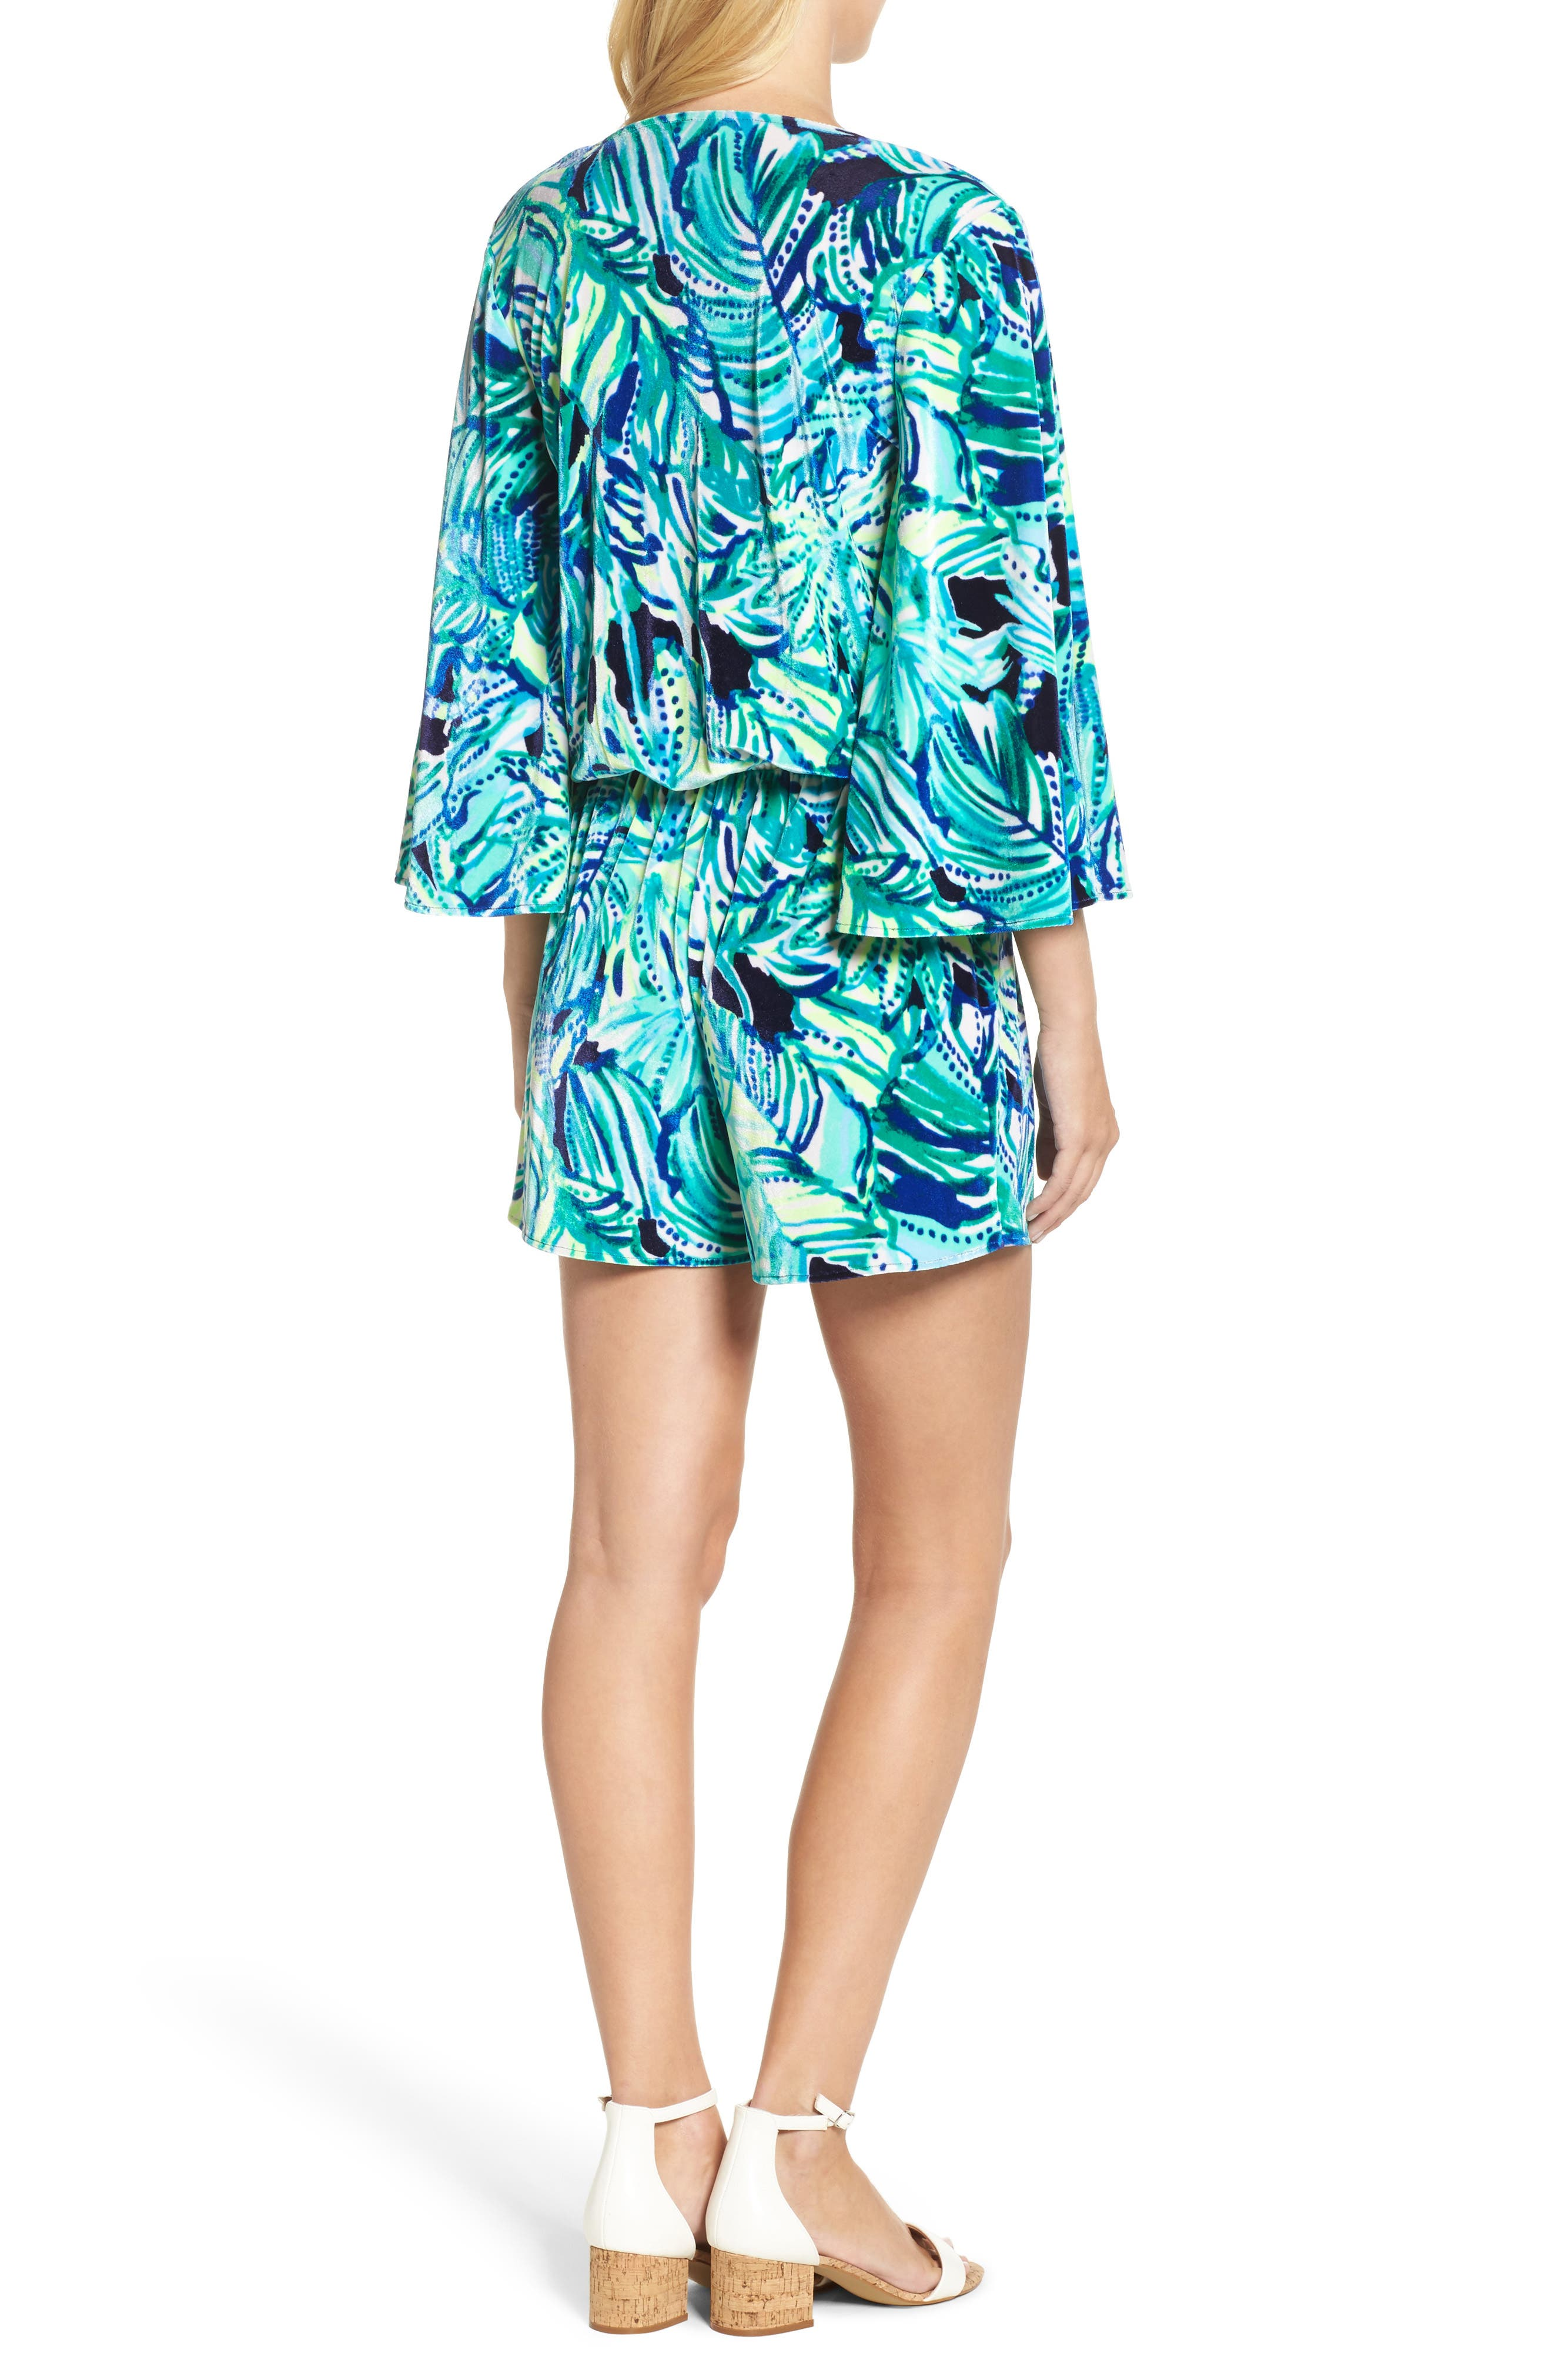 Lily Pulitzer<sup>®</sup> Viviana Romper,                             Alternate thumbnail 2, color,                             Bright Navy Dally